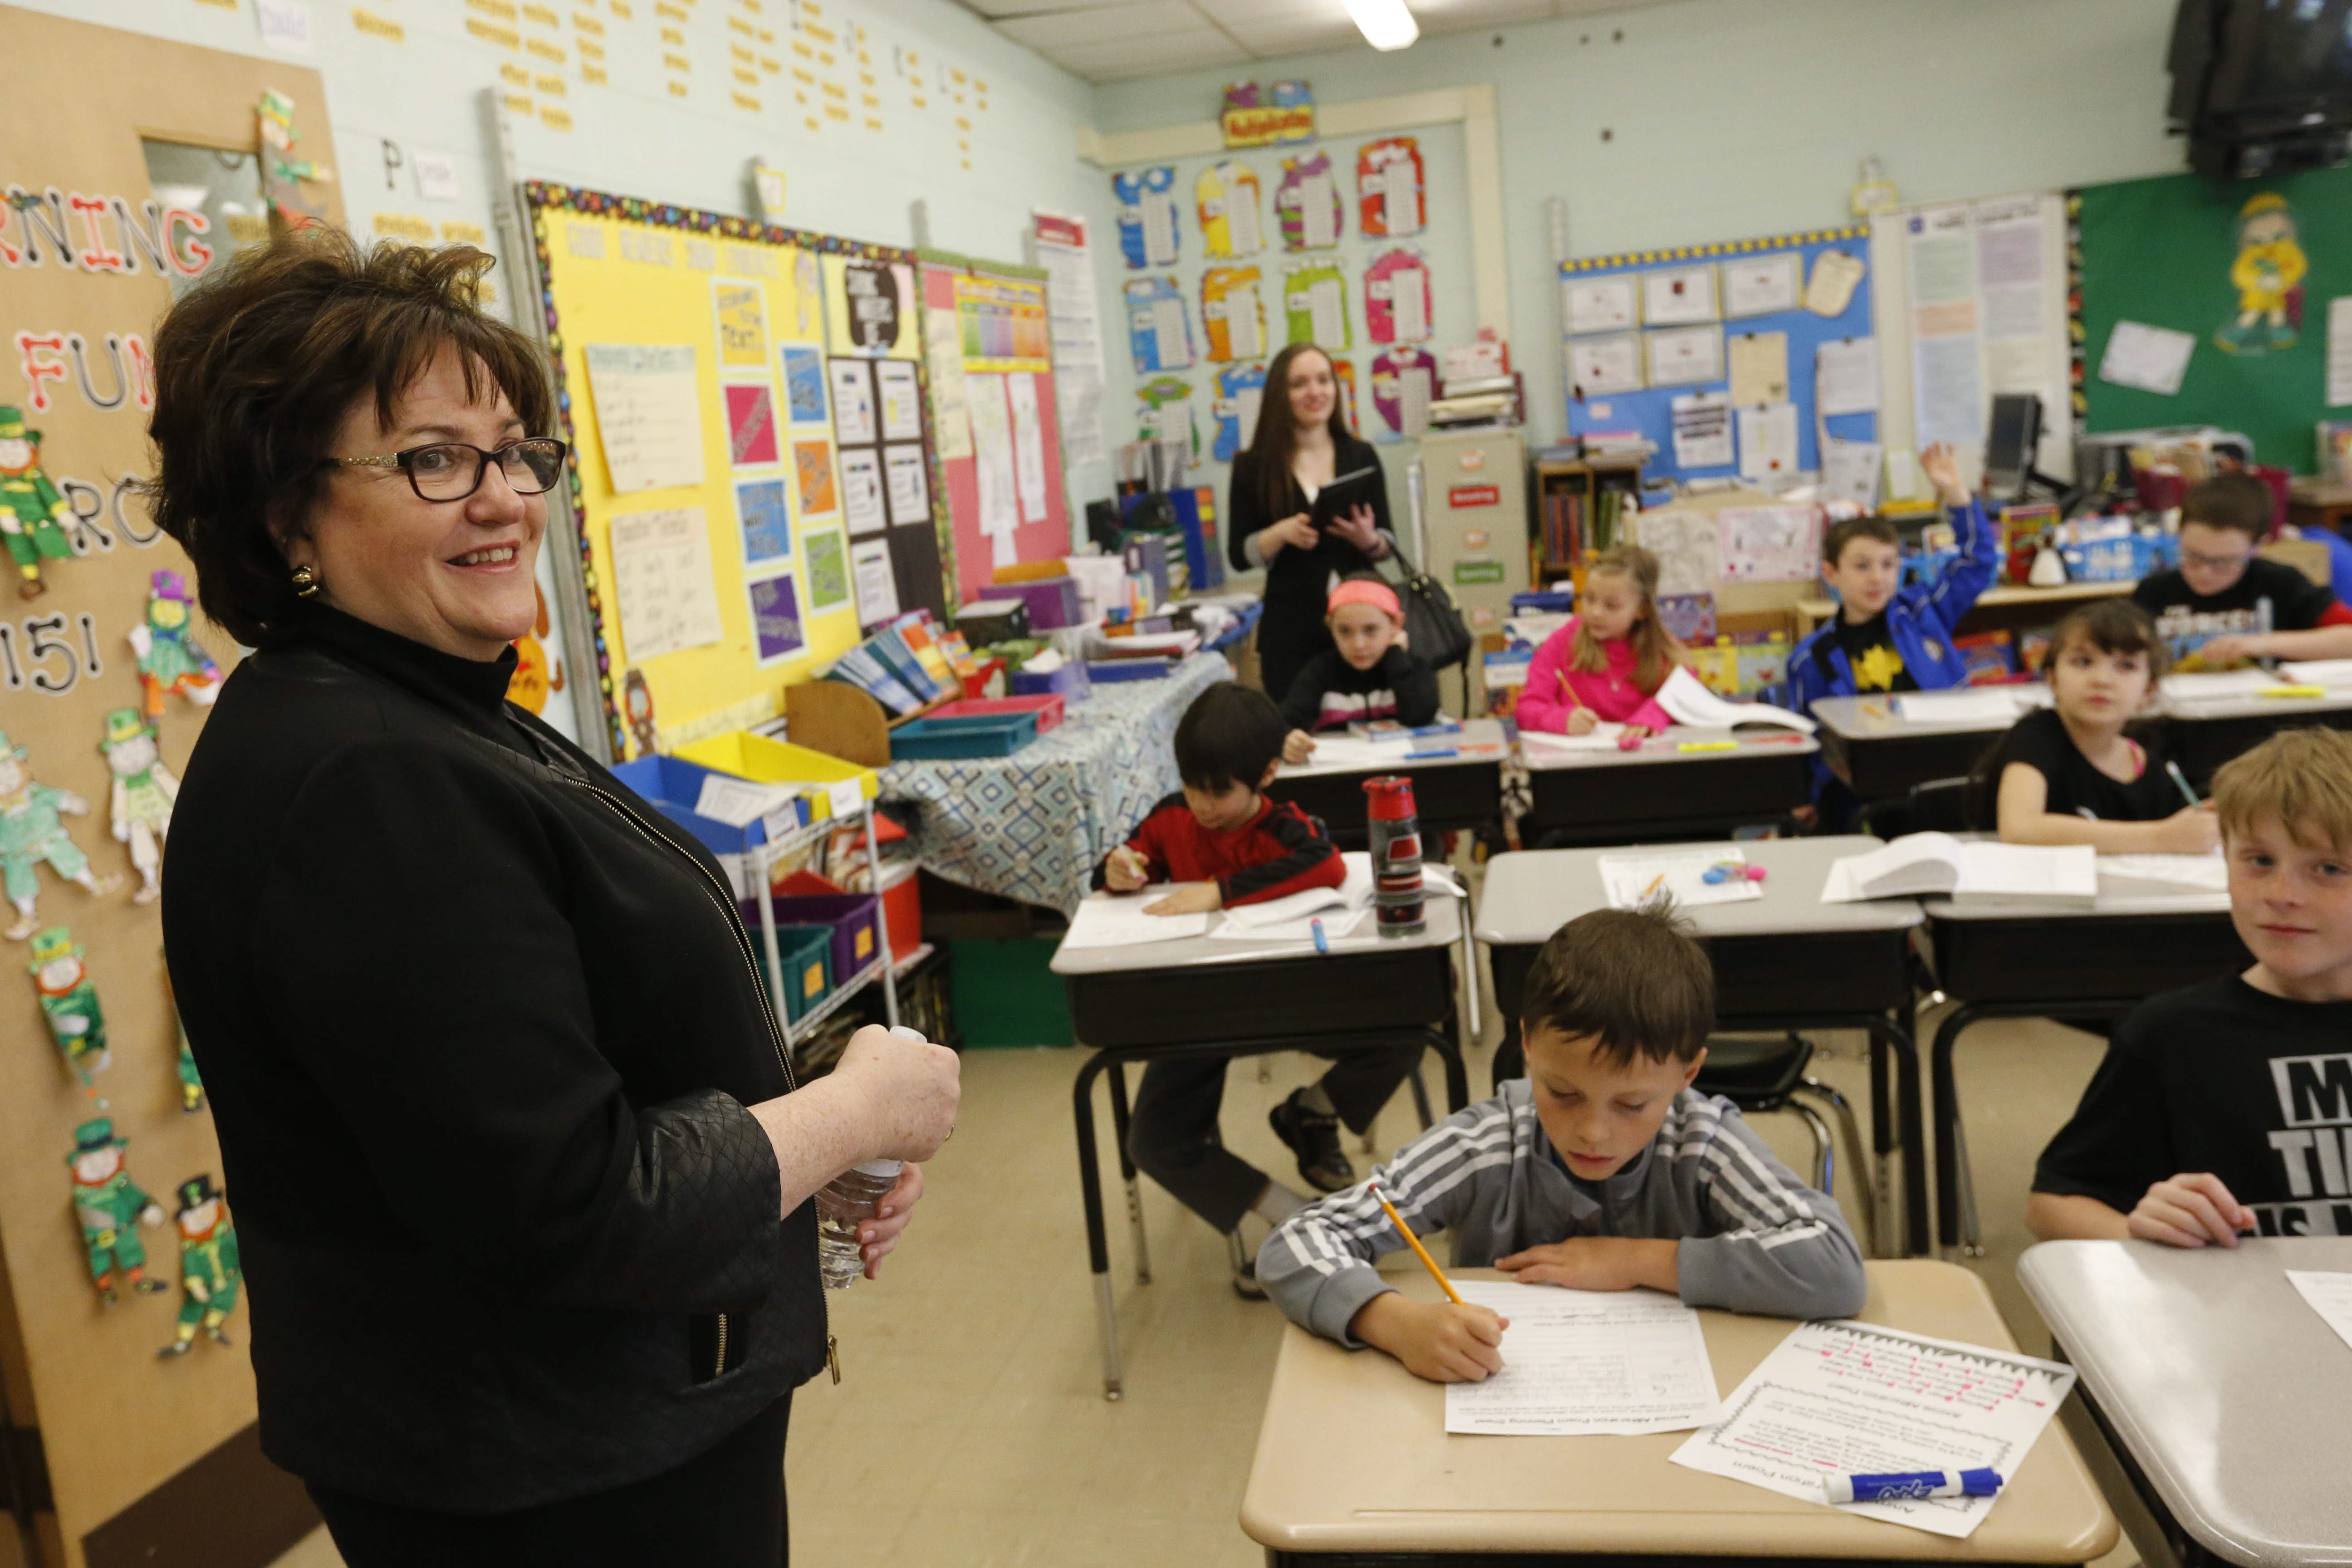 State Education Commissioner MaryEllen Elia met with students as well as parents and teachers during her recent visit to Western New York. (Derek Gee/Buffalo News)